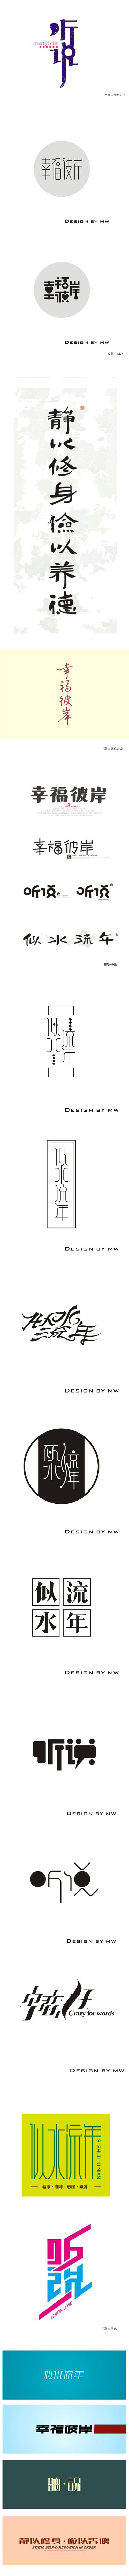 chinesefontdesign.com 2016 07 06 22 20 49 90+ Imaginative Examples of Chinese Fonts Designs